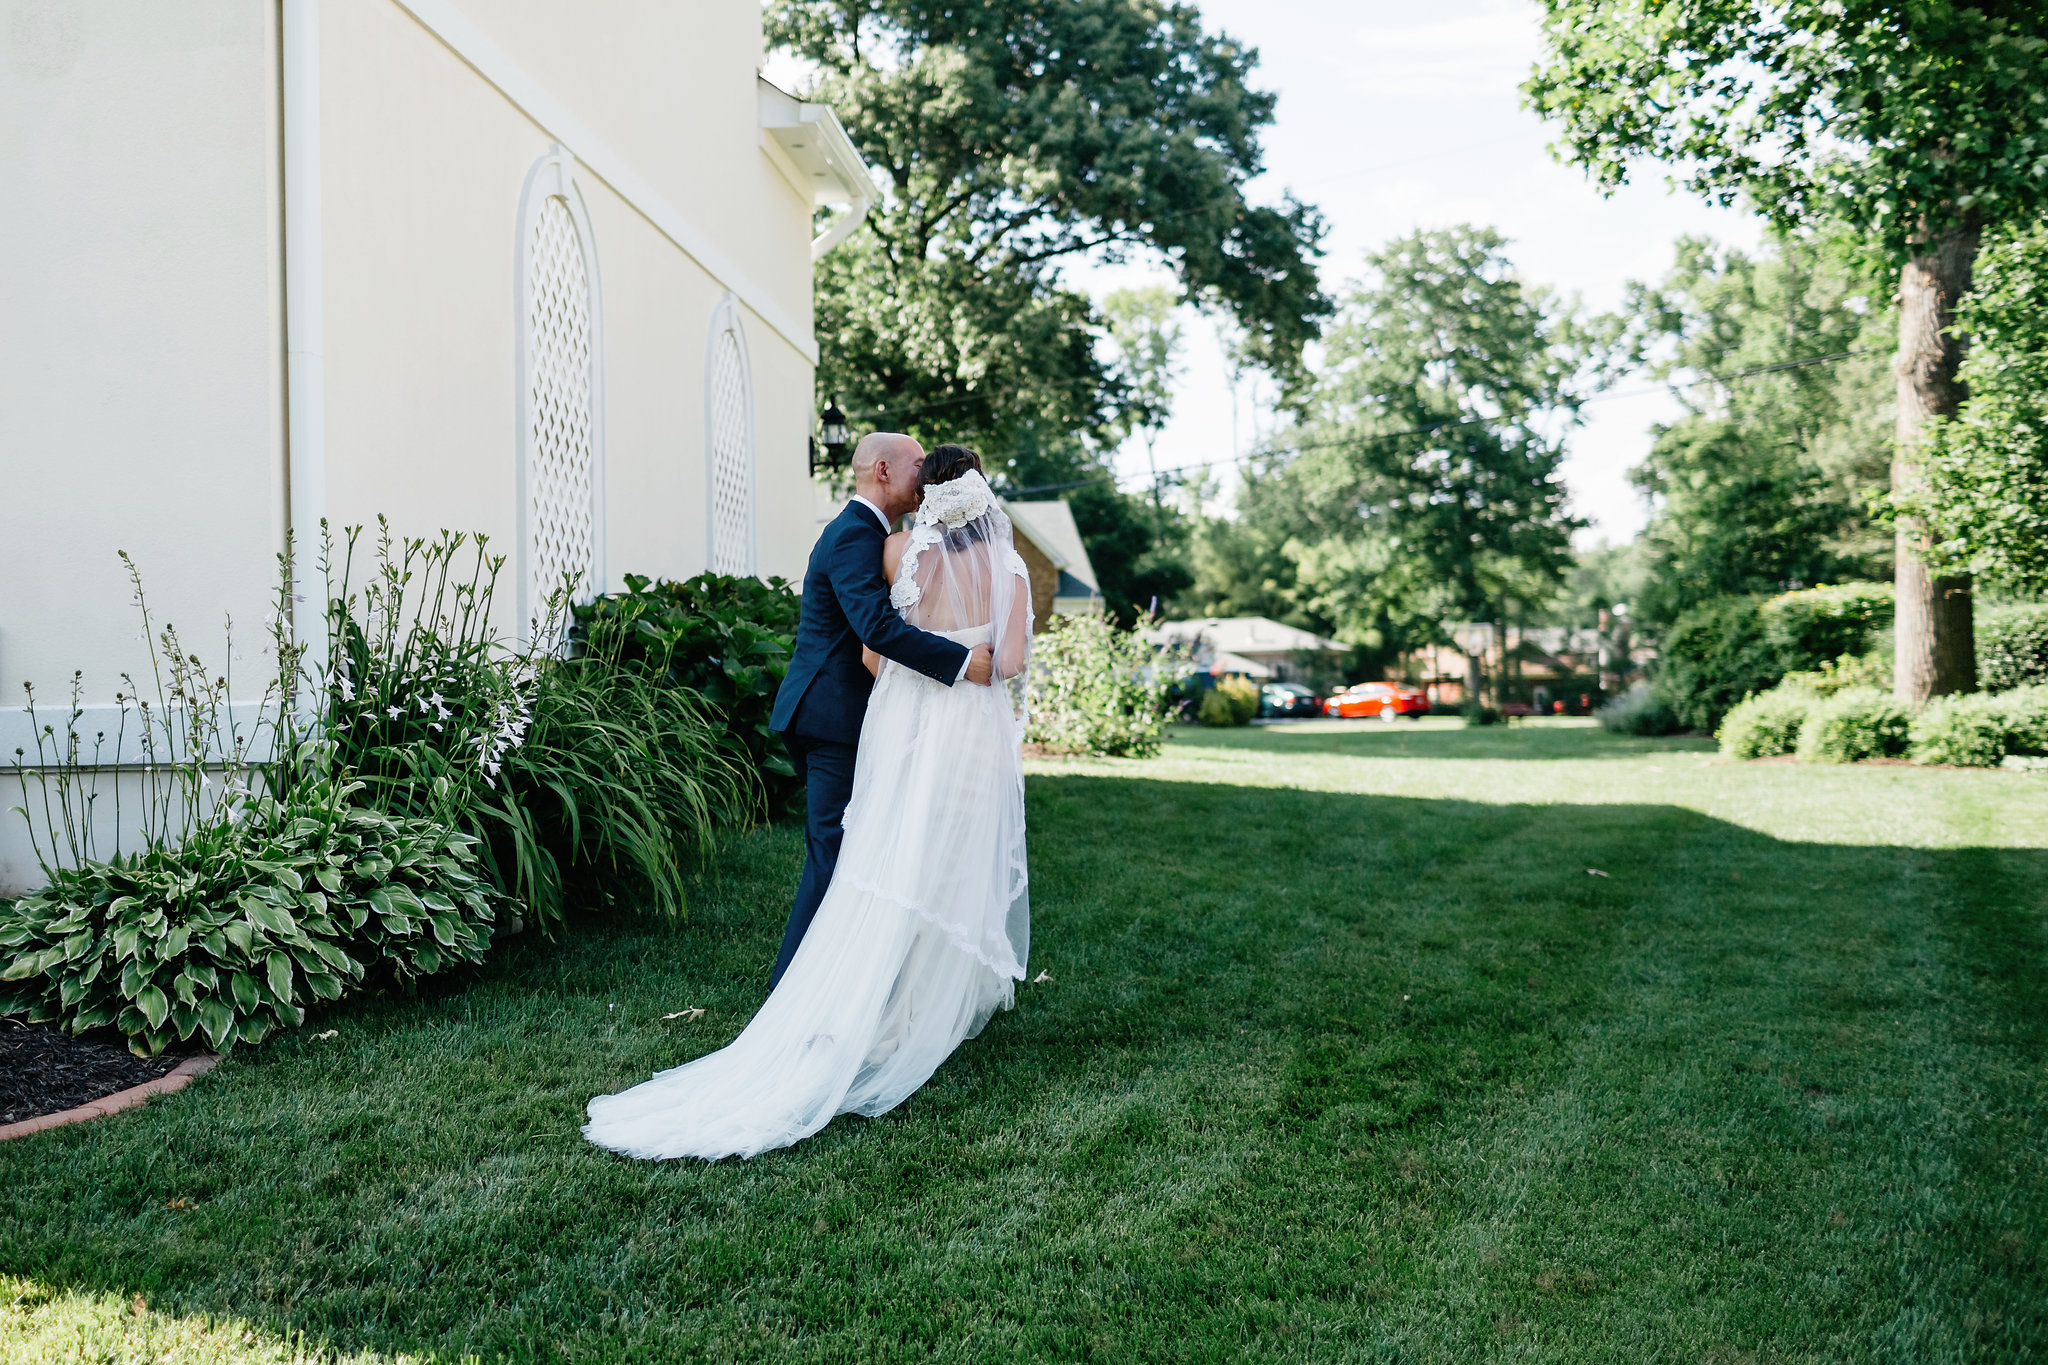 Maria&Dave2017-07-28at9.36.56AM82.jpg